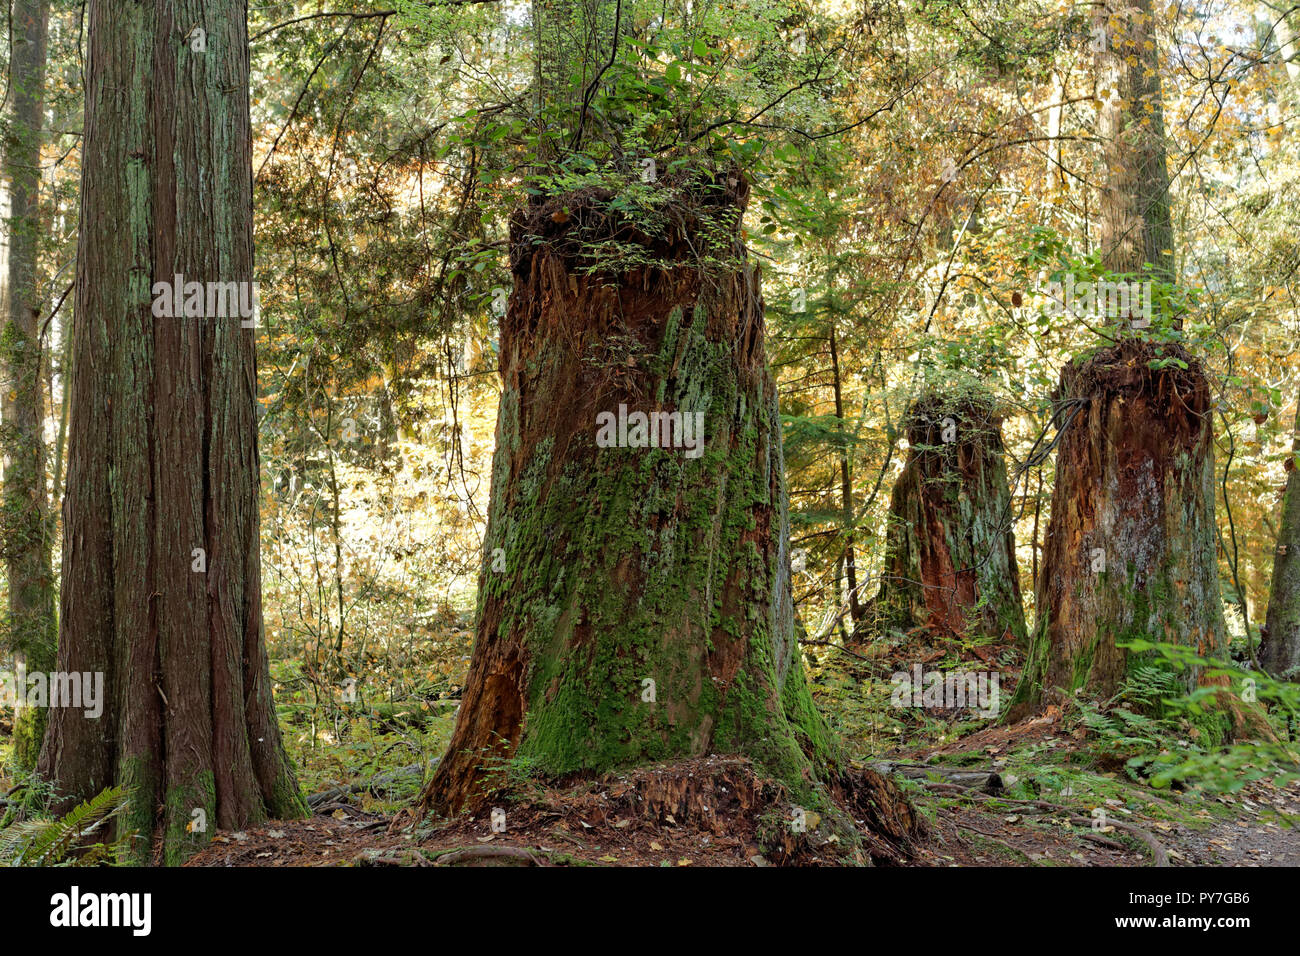 logged-primary-growth-tree-trunks-in-the